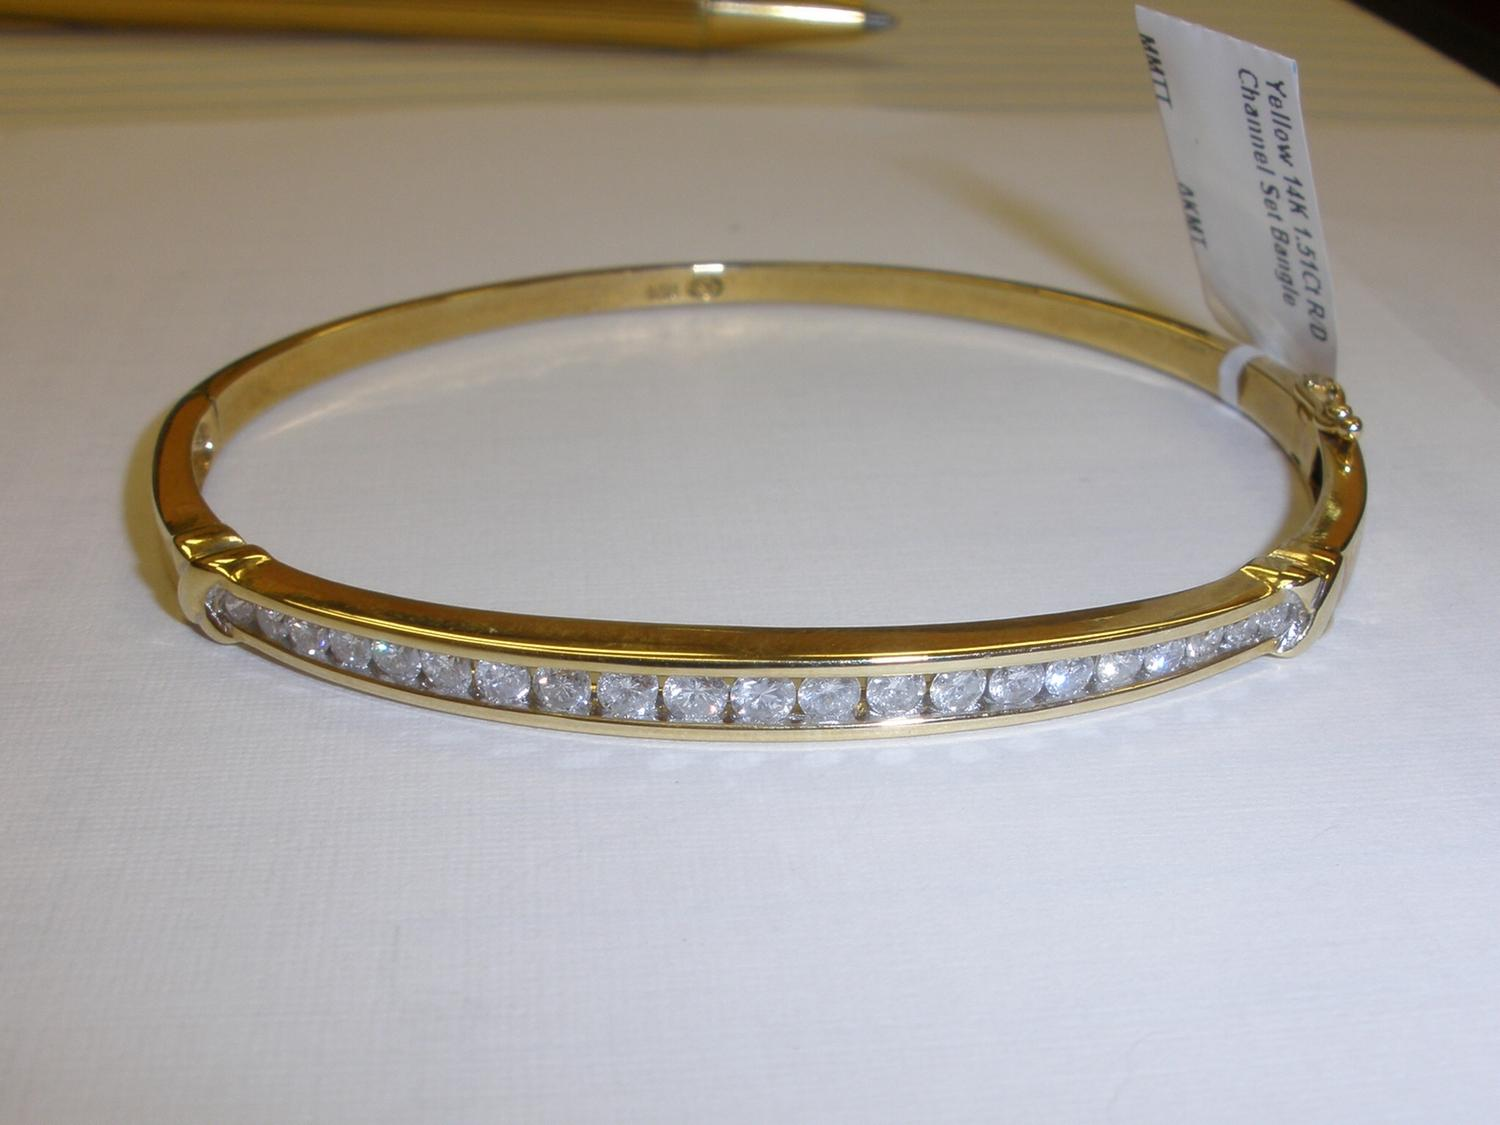 bangle tapered jewelry bangles diamond jeweler bridge ben bracelet